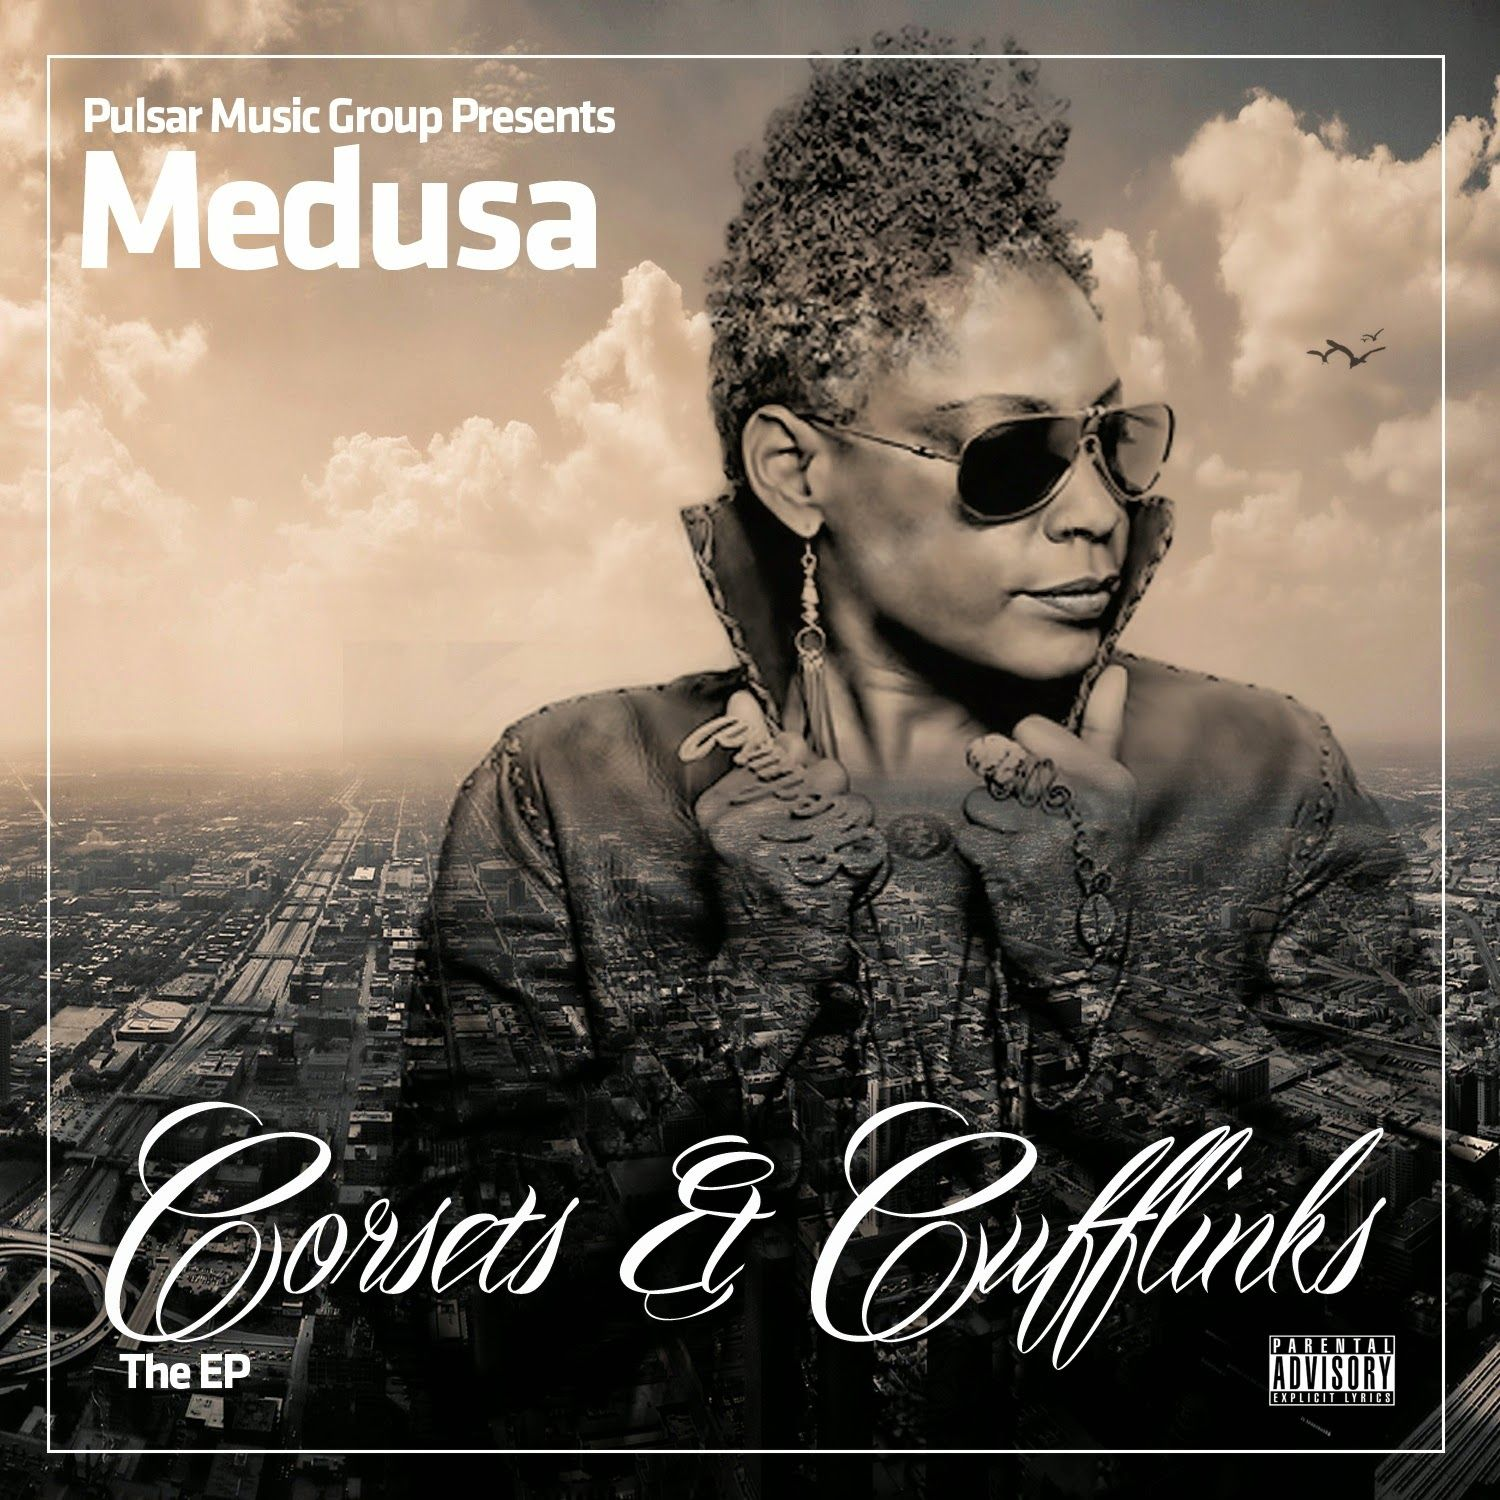 Medusa's Corsets & Cufflinks on iTunes (With images